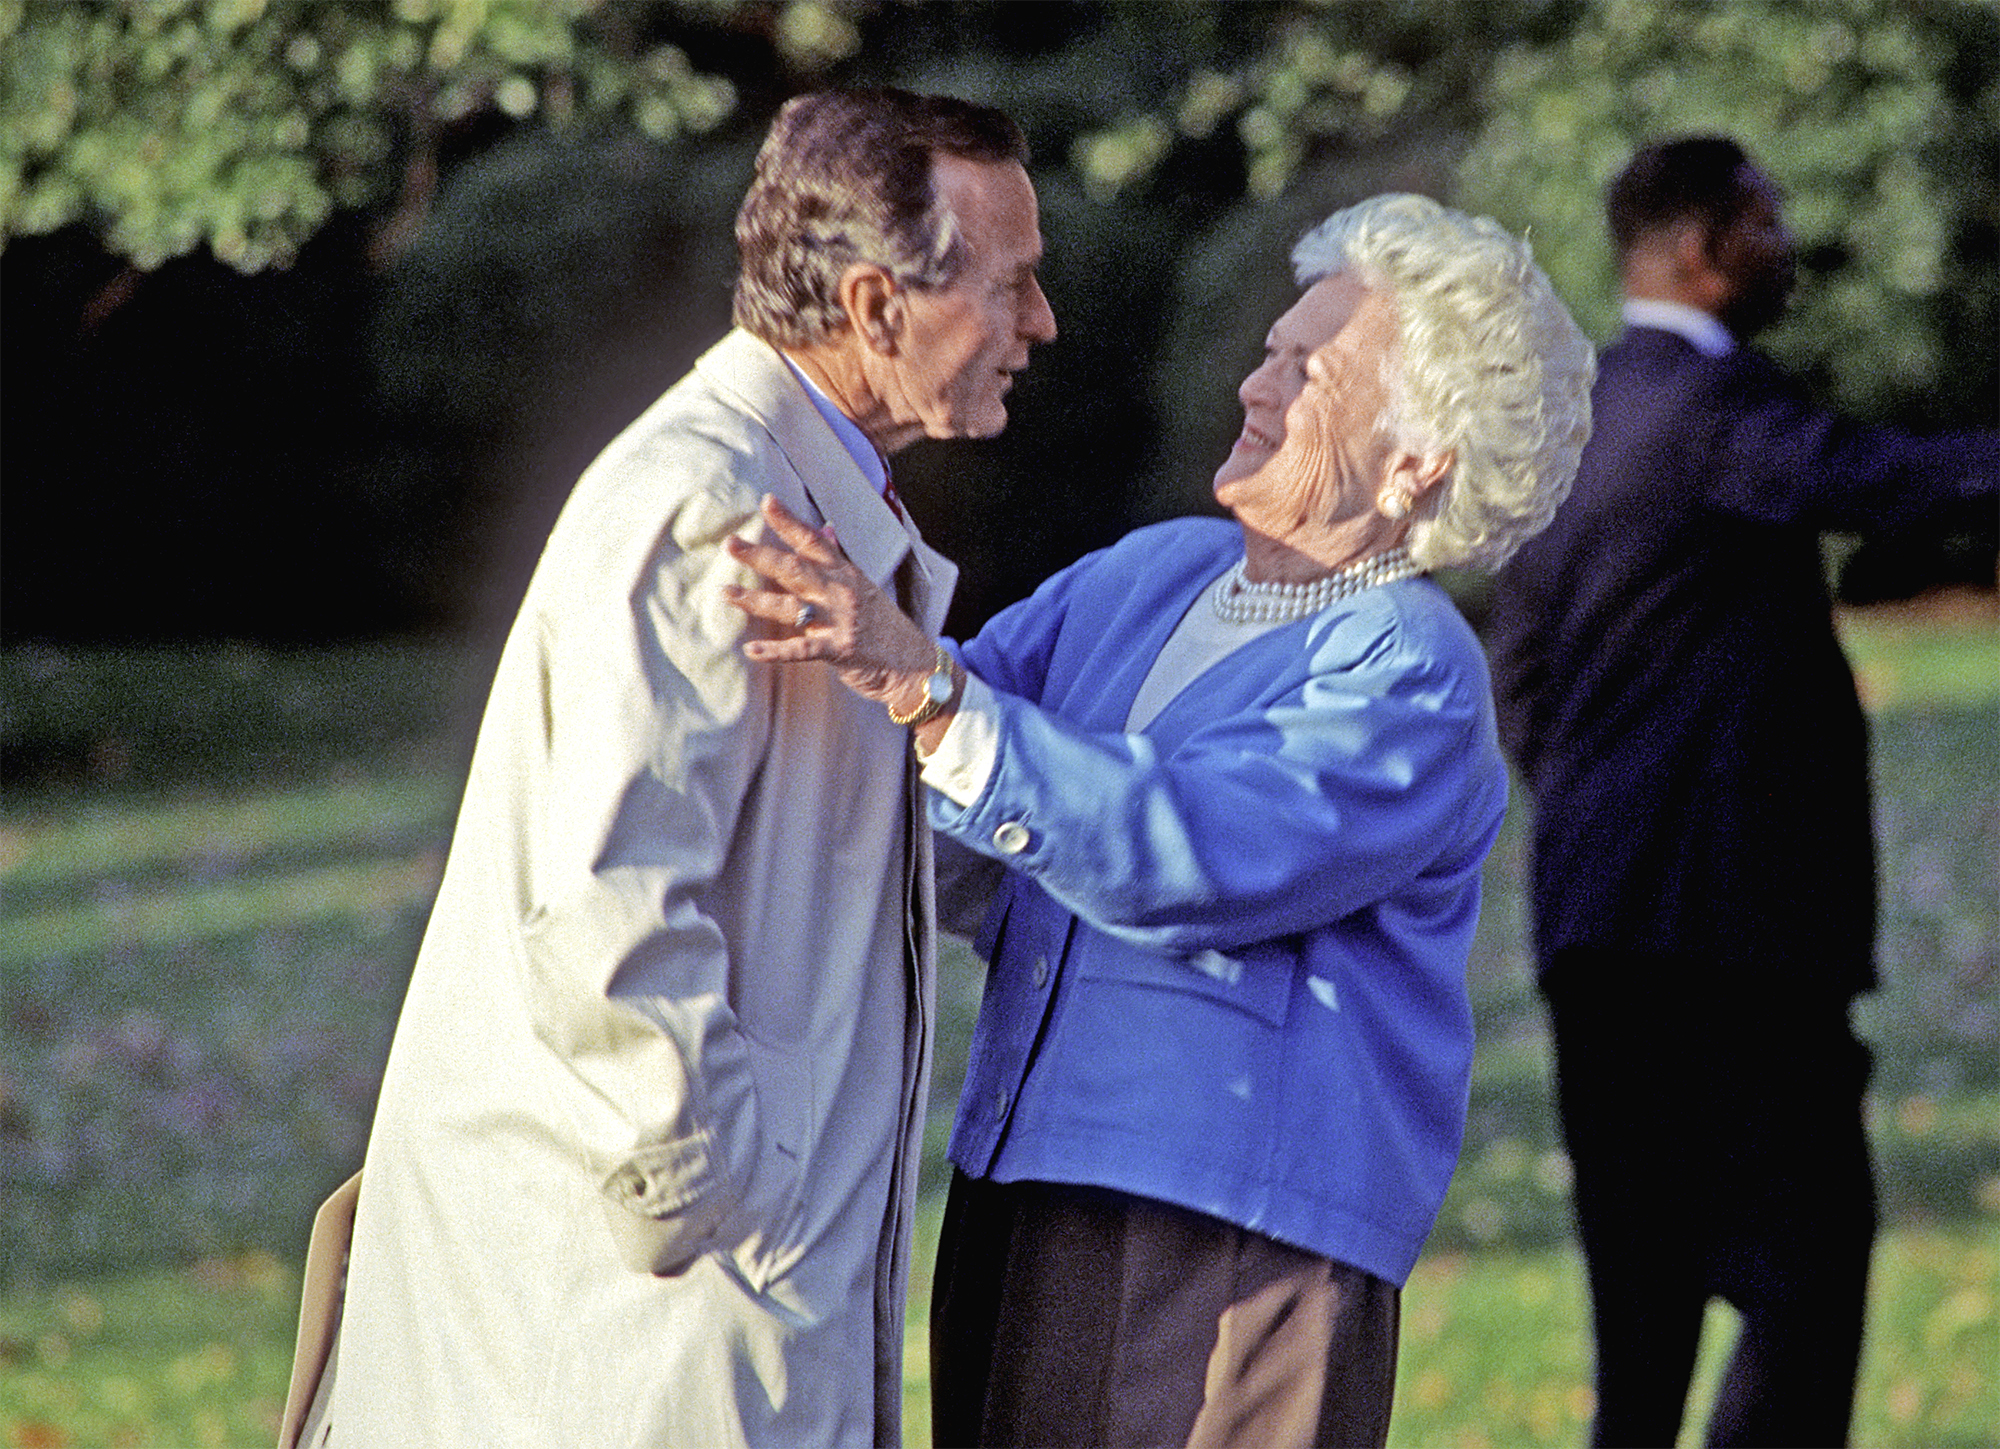 Former First Lady Barbara Bush is reported to be in ailing health